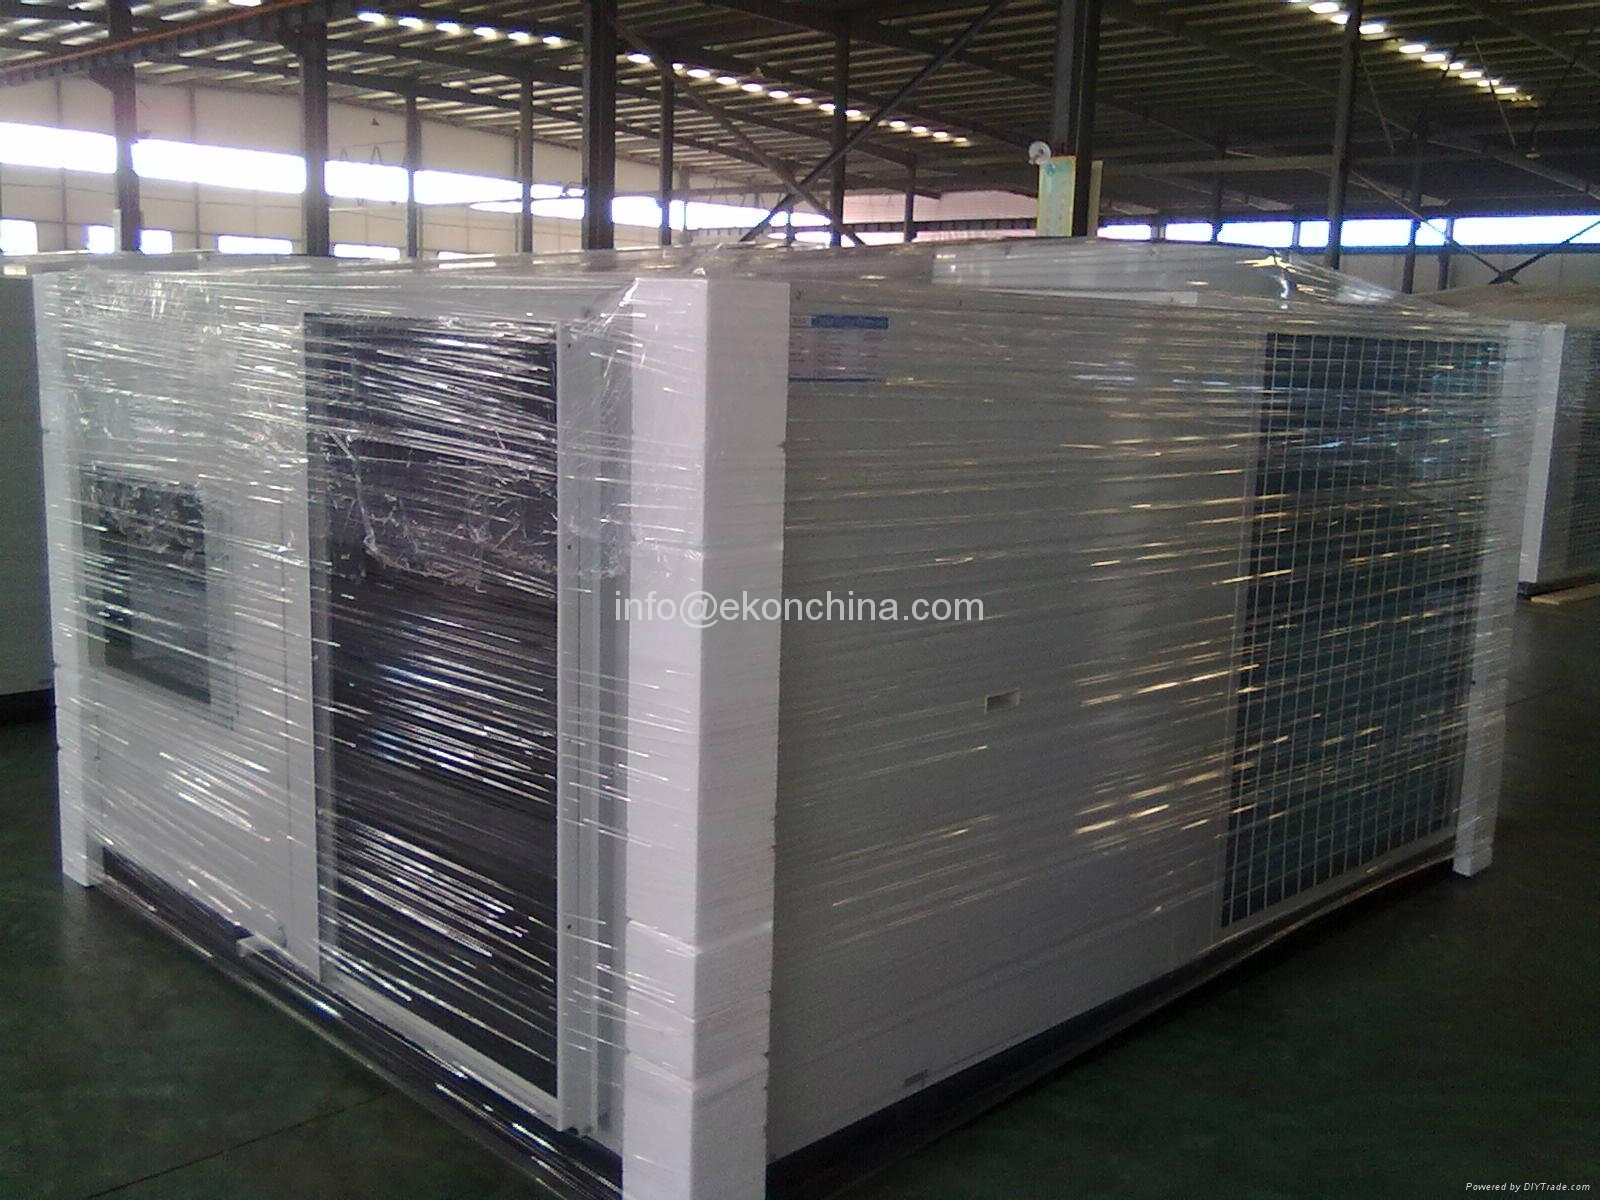 Packaged rooftop air conditioner 10TR capacity Hong Kong